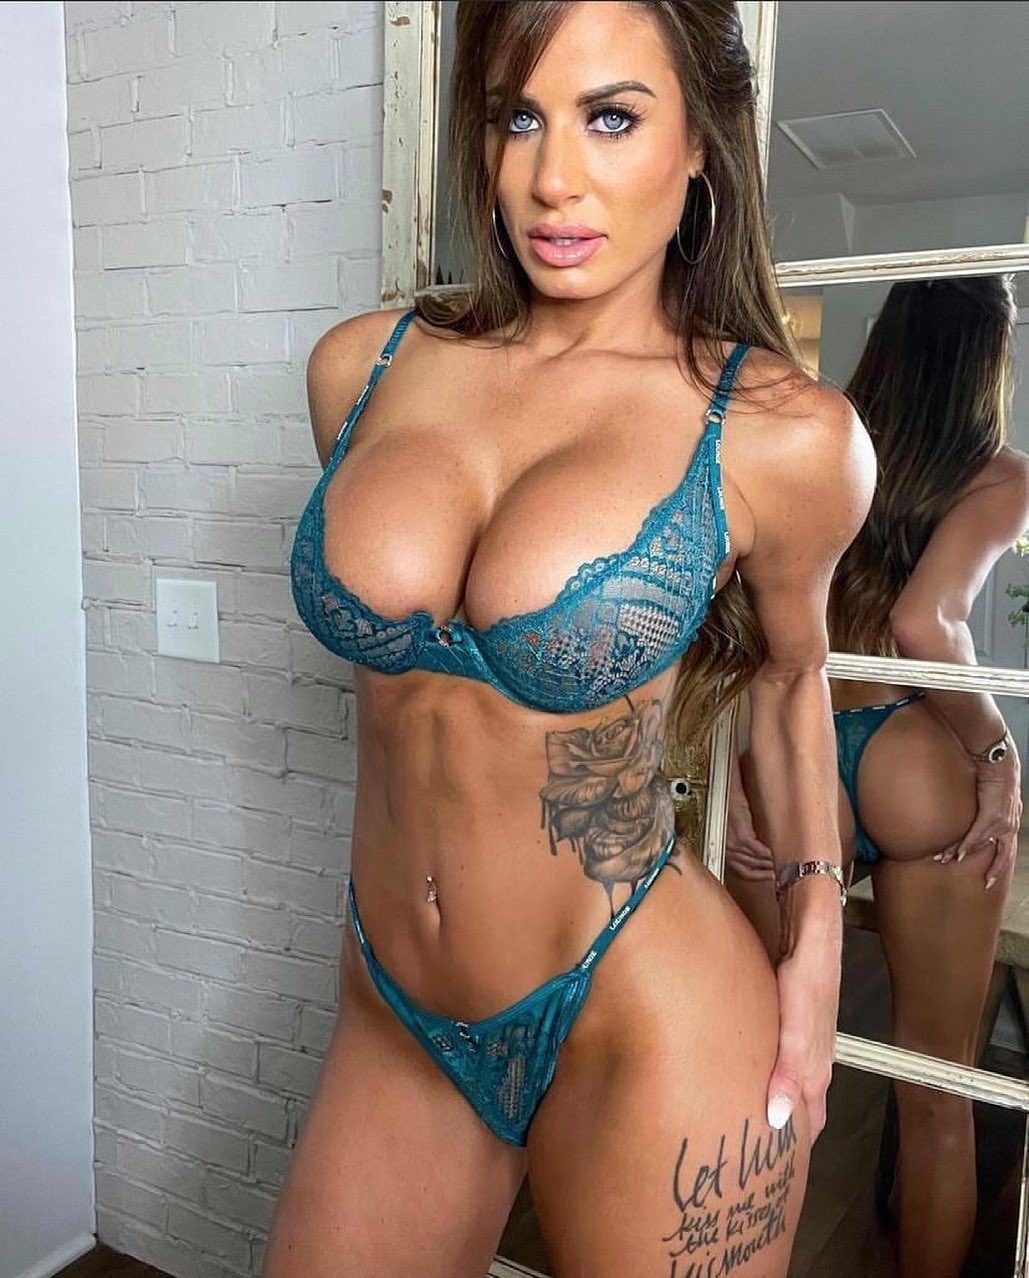 Yvonne bar one of the Instagram models draws attention with its big breasts 3